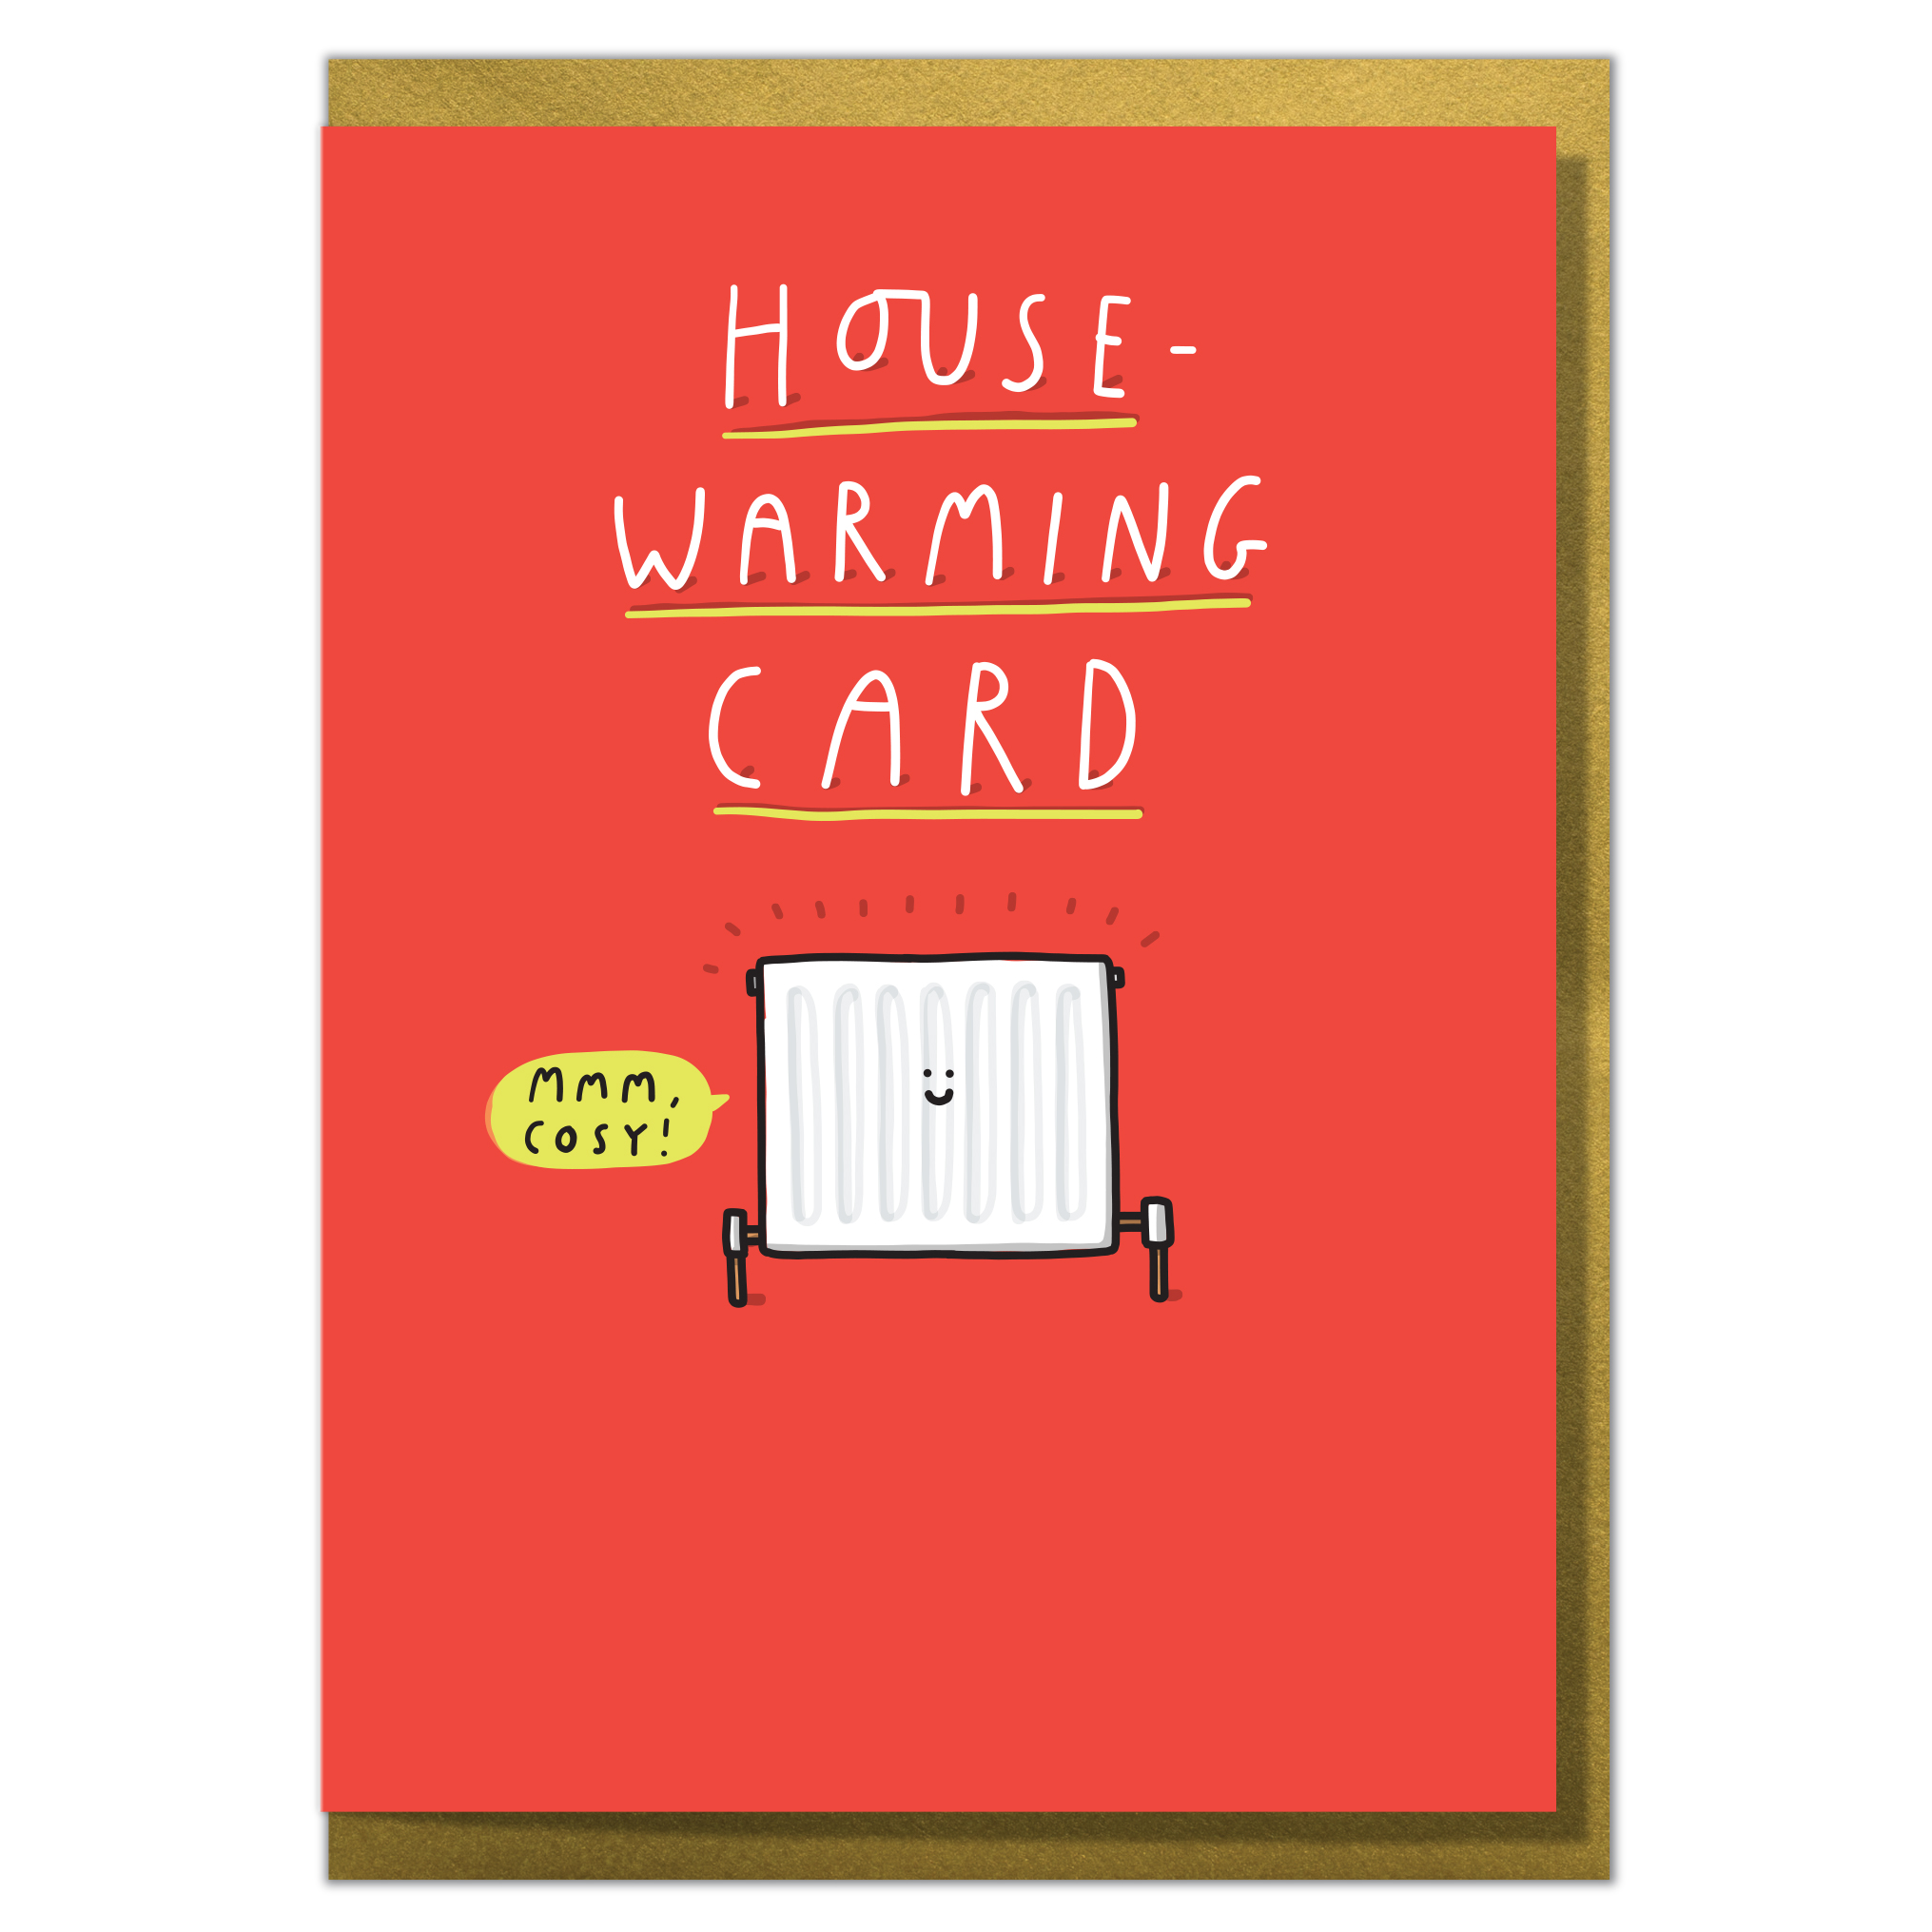 Yi154 Housewarming Card